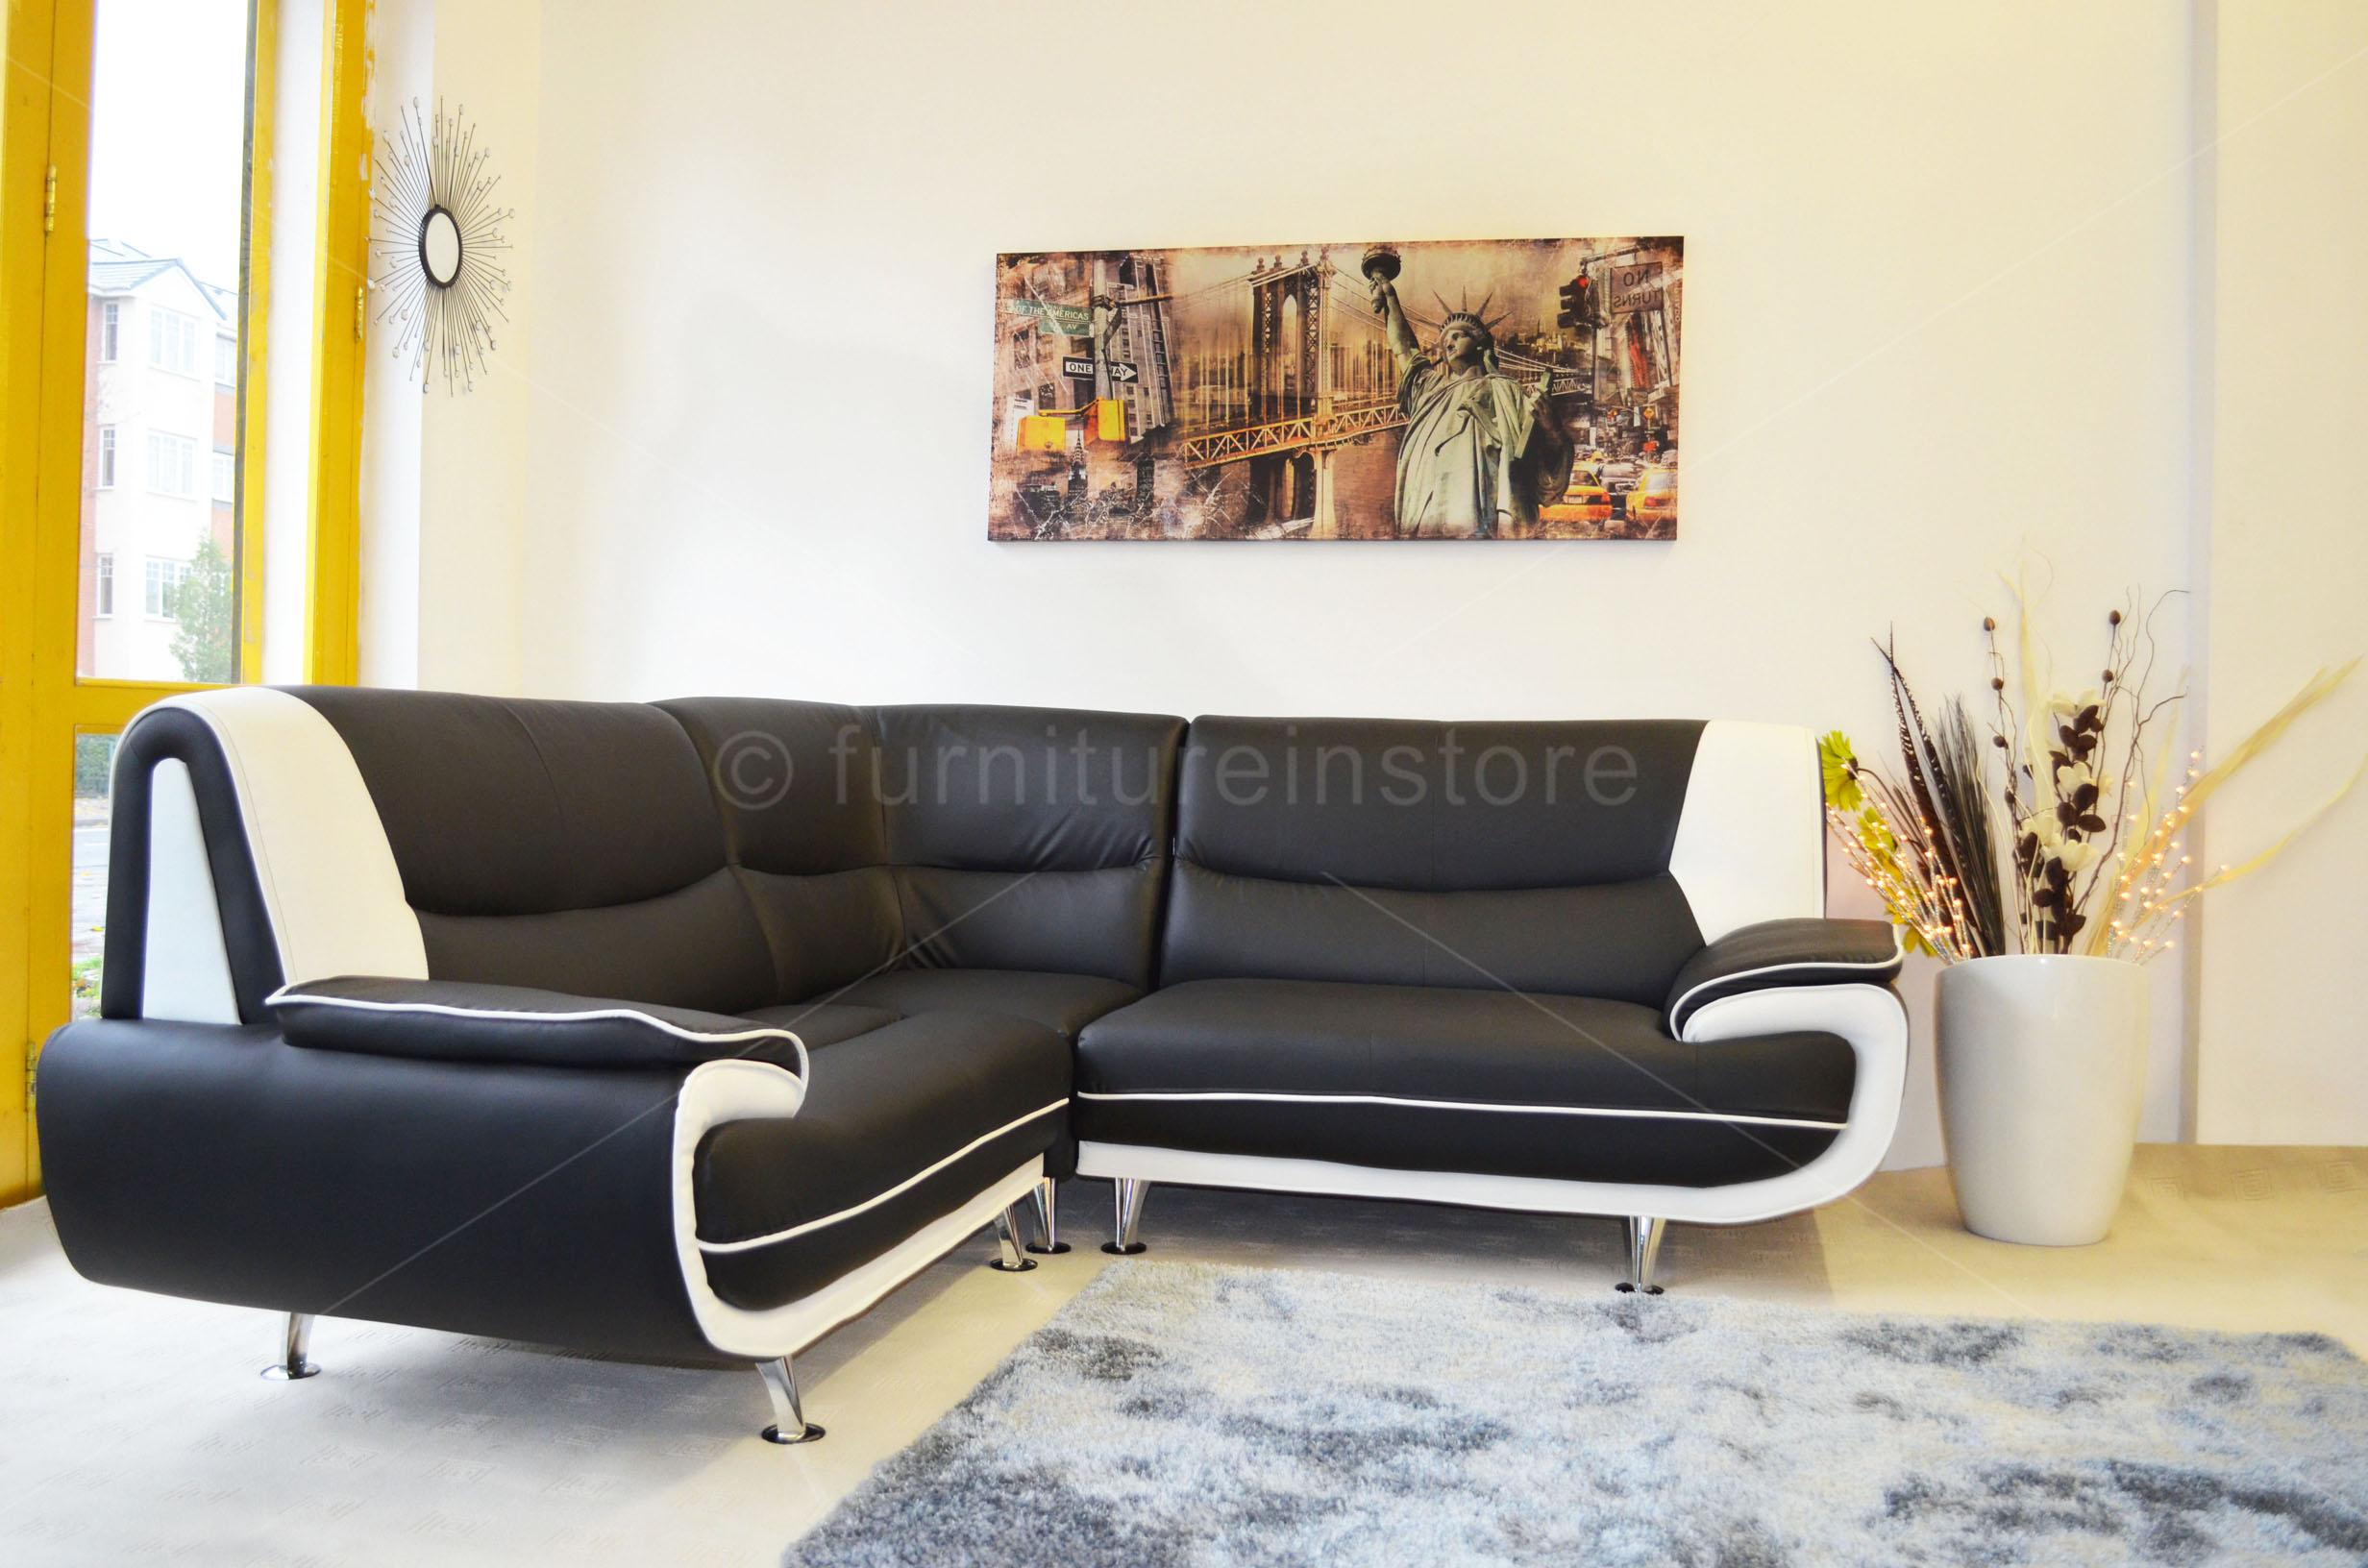 Surprising Leather Corner Sofa Second Hand Ncnpc Chair Design For Home Ncnpcorg